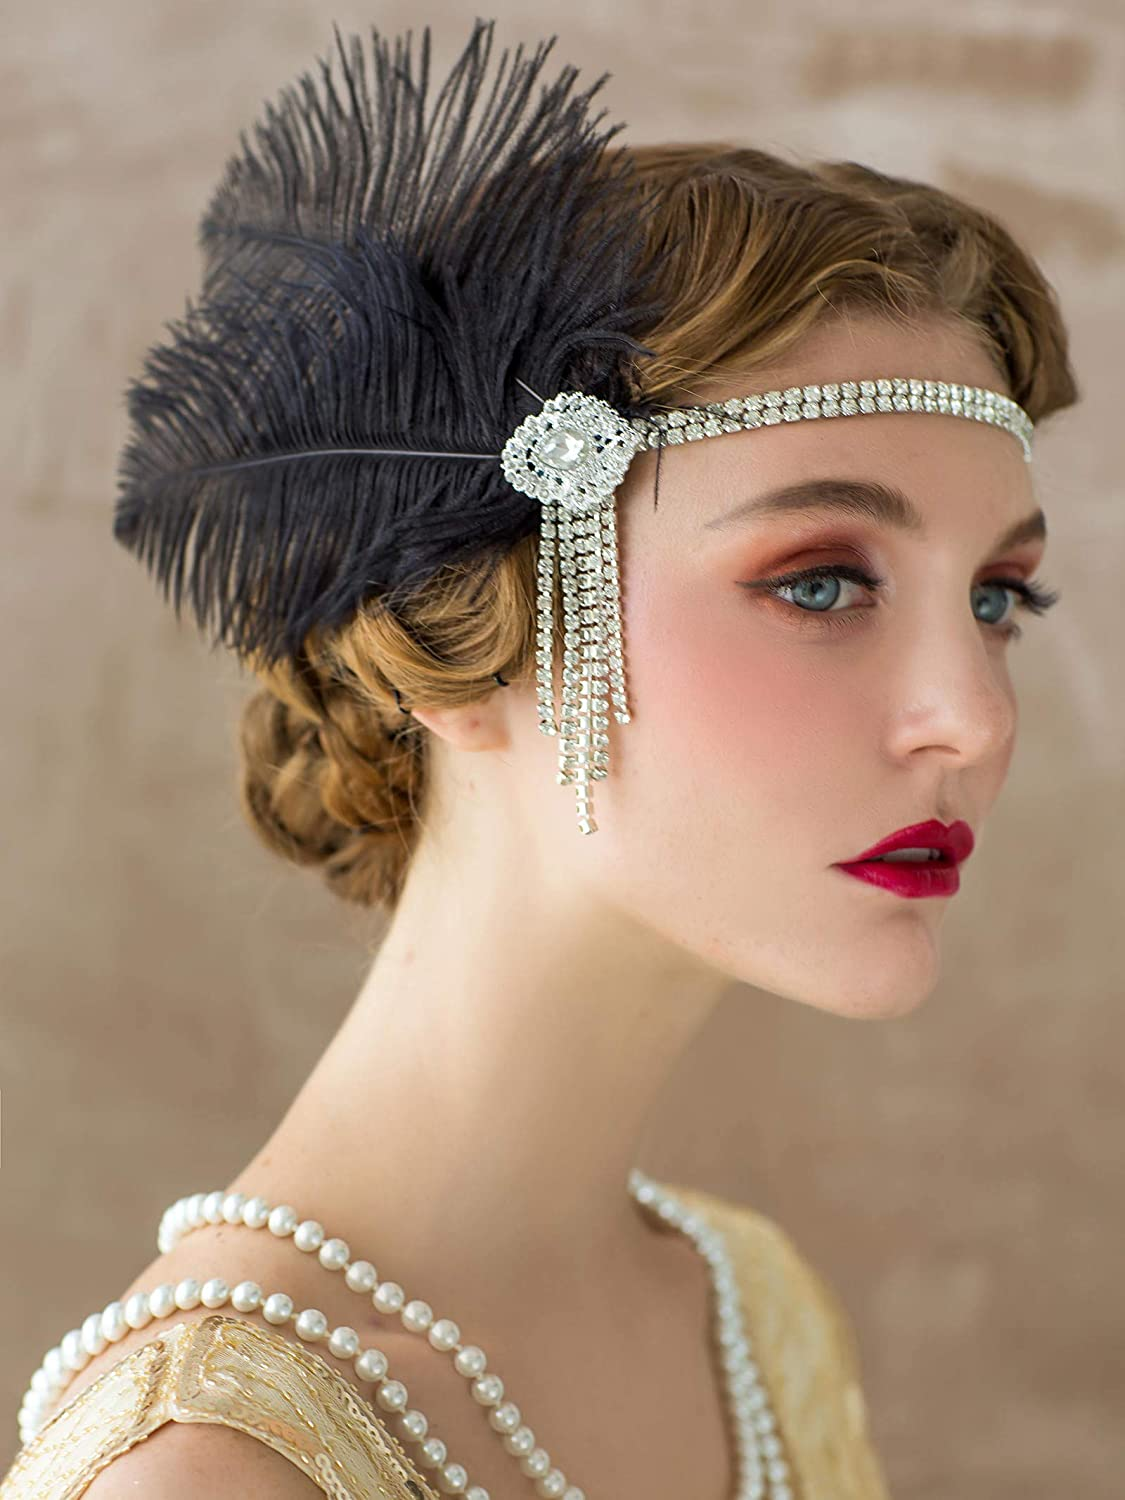 1920s Flapper Headband, Gatsby Headpiece, Wigs SWEETV Flapper Headbands Womens 1920s Headpiece Great Gatsby Inspired Feather Headband Cocktail Party Rhinestone Hair Accessories for Women Black $13.99 AT vintagedancer.com